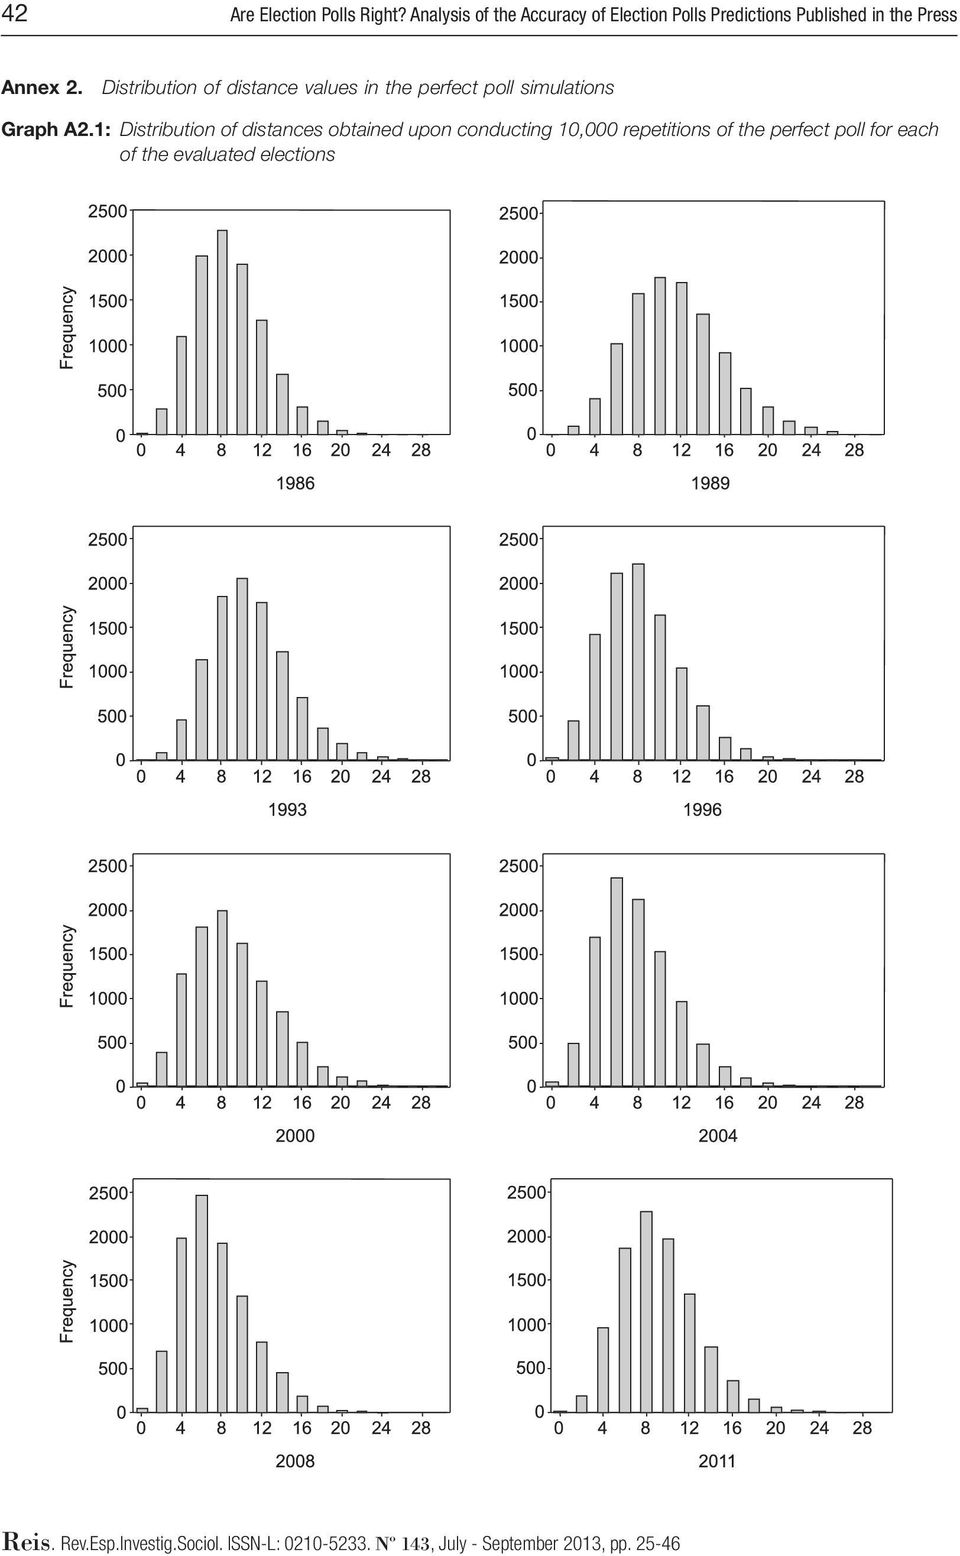 Distribution of distance values in the perfect poll simulations Graph A2.